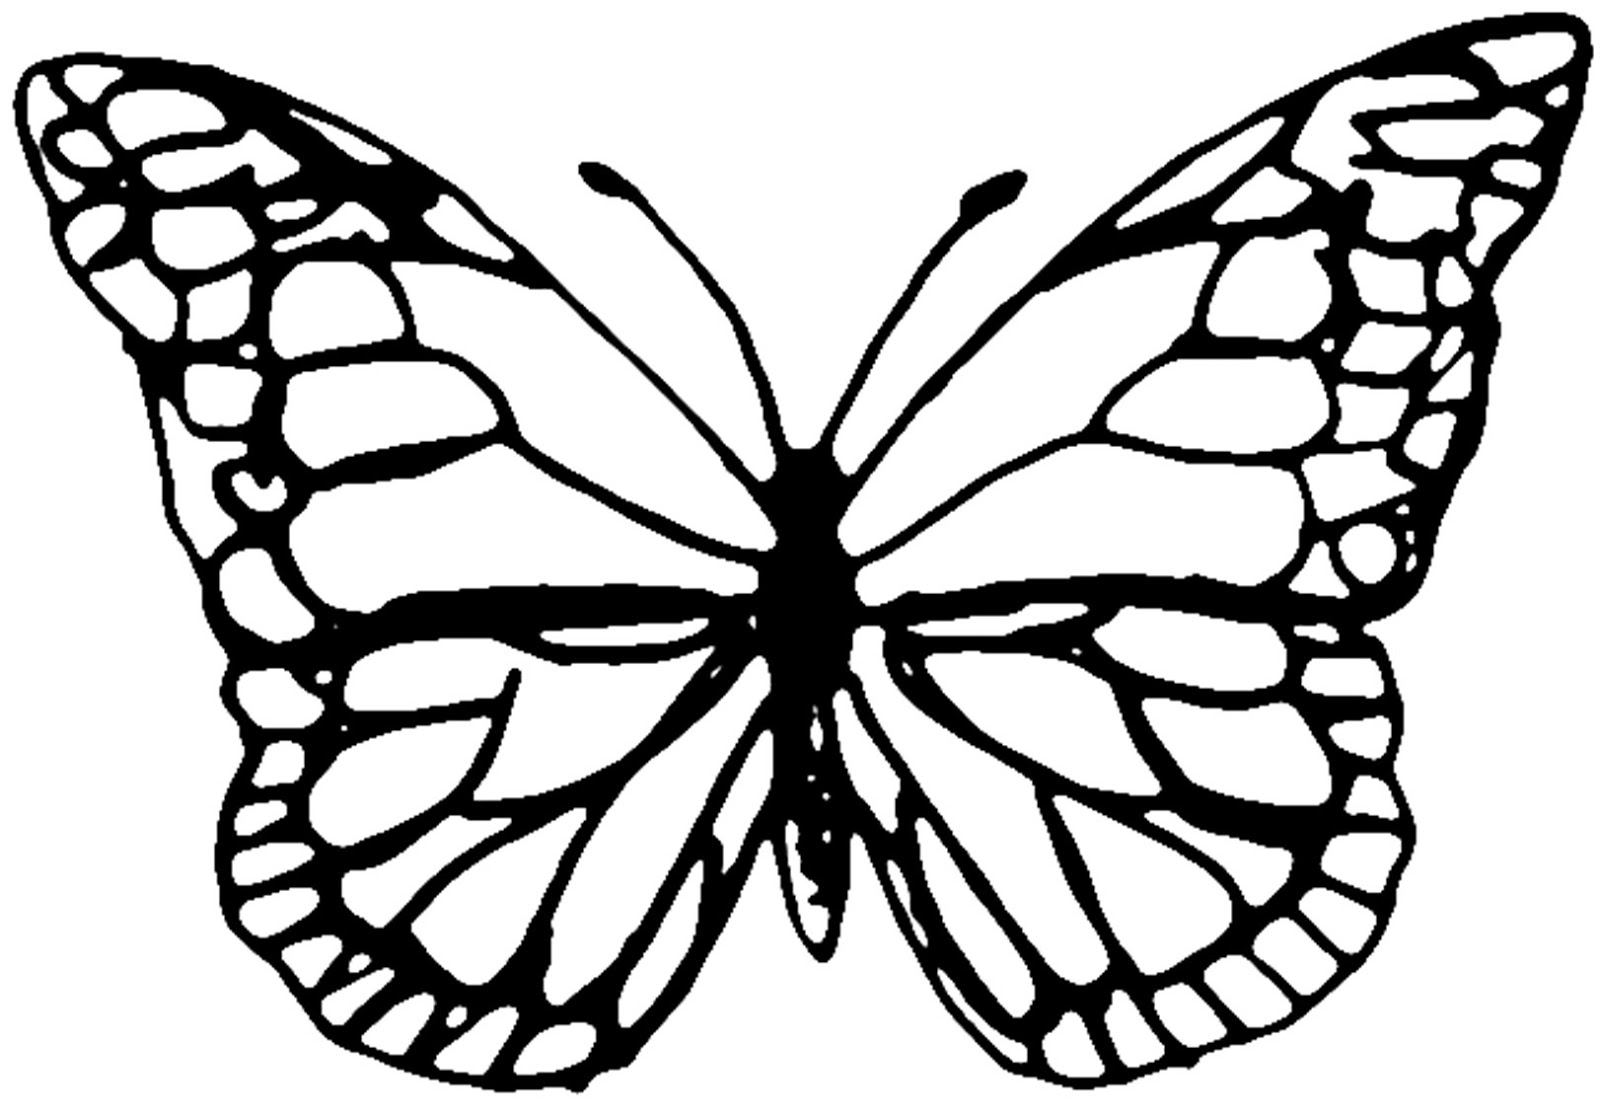 photograph about Butterfly Patterns Printable referred to as Butterfly Drawing Template at  Free of charge for